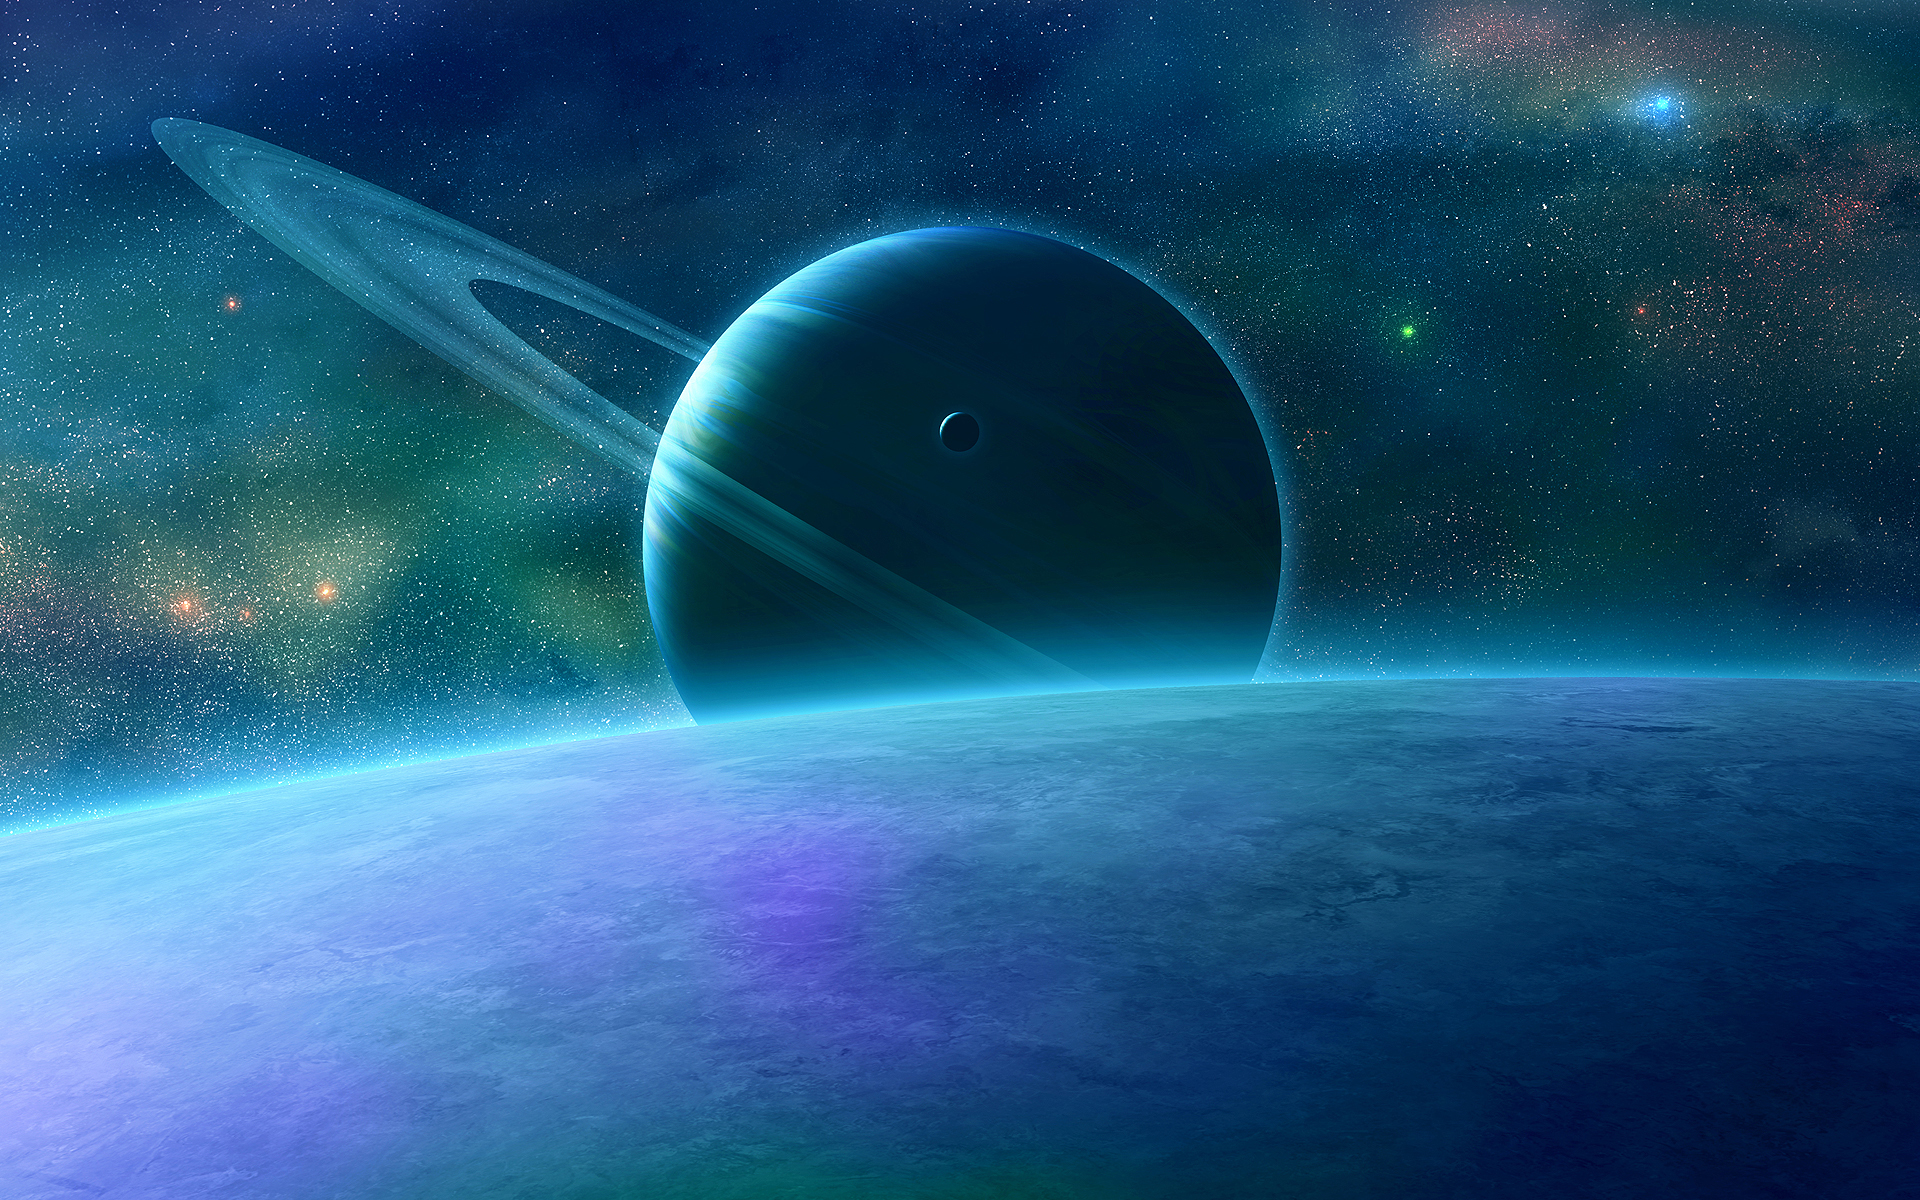 Planetary ring computer wallpapers desktop backgrounds - Space wallpaper 2160x1920 ...